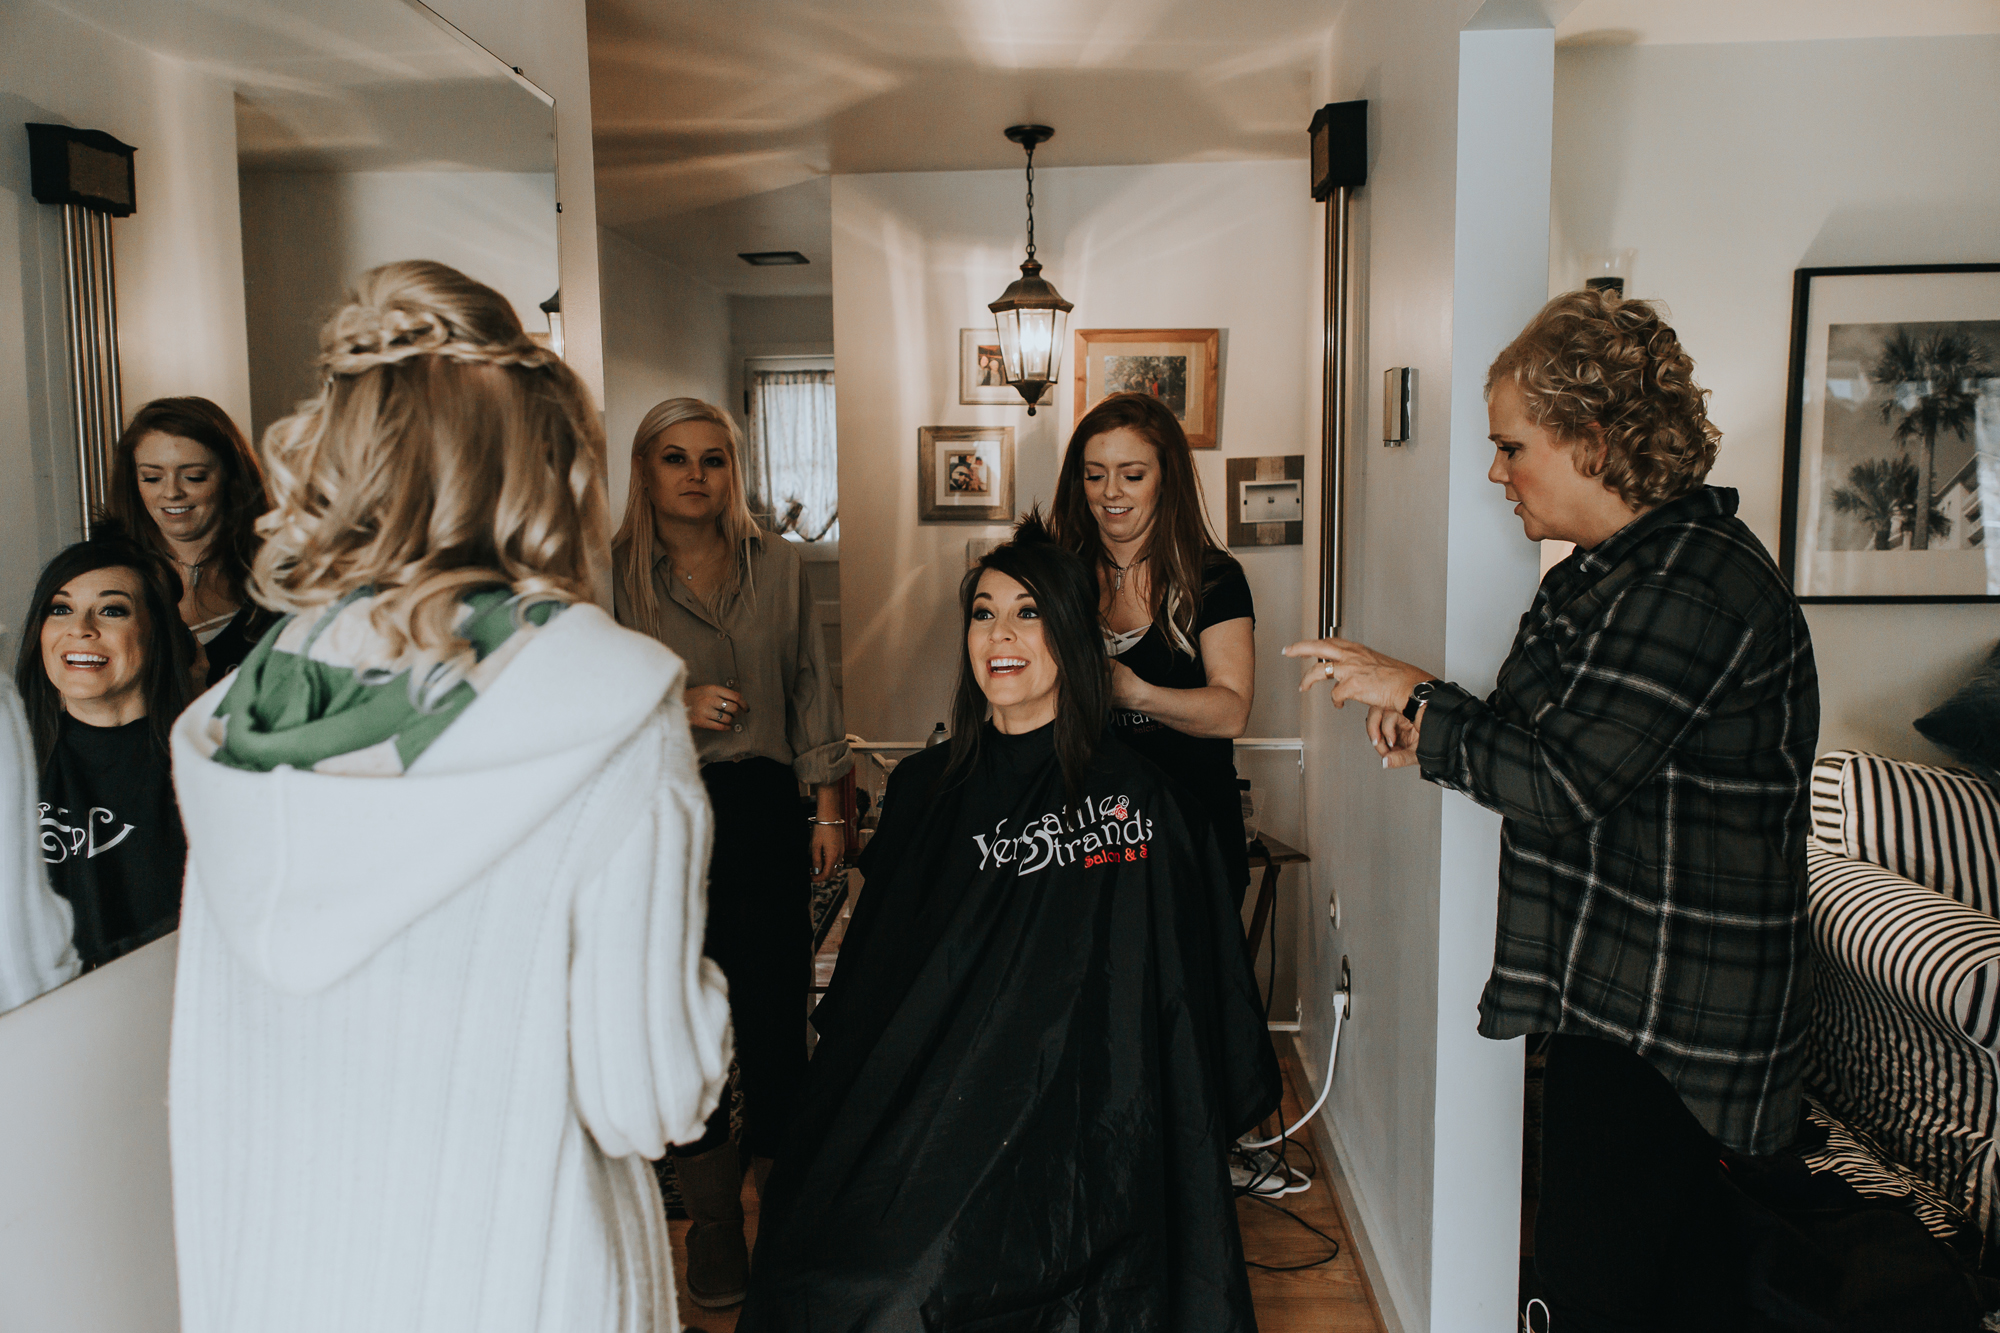 slatington-pennsylvania-getting-ready-wedding-photography